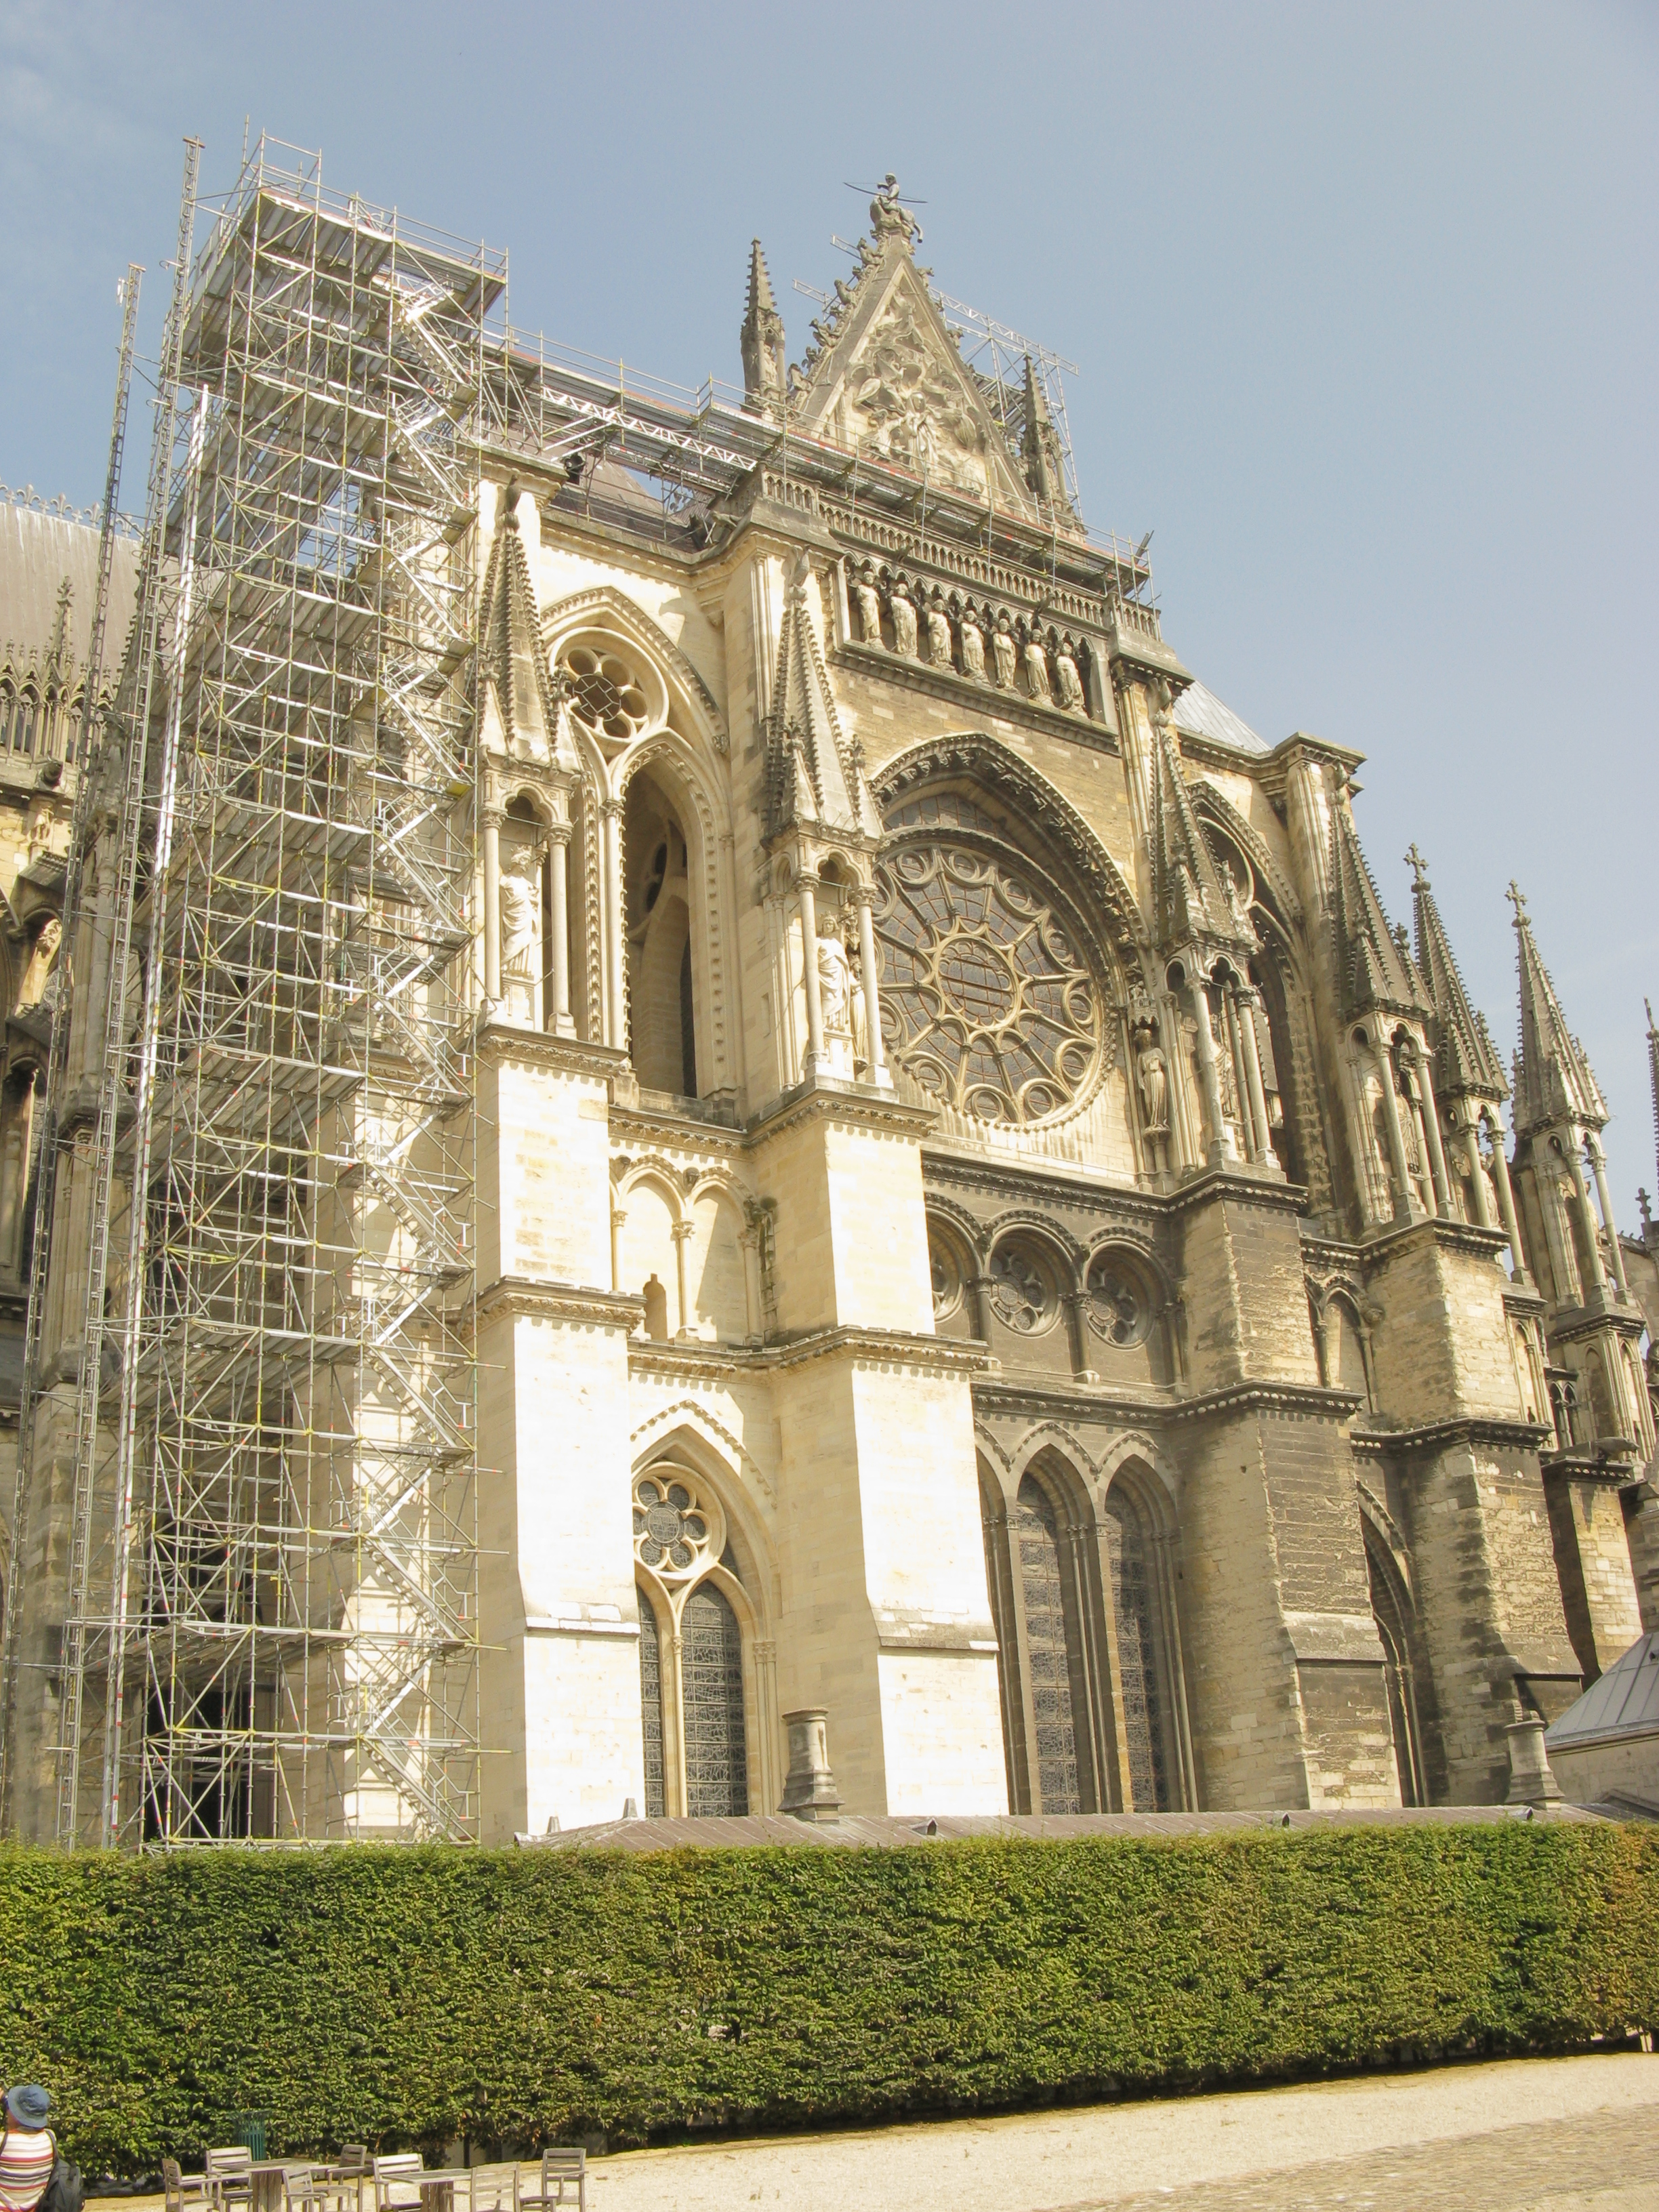 http://upload.wikimedia.org/wikipedia/commons/a/a3/Reims_Cathedral_south_portal.JPG